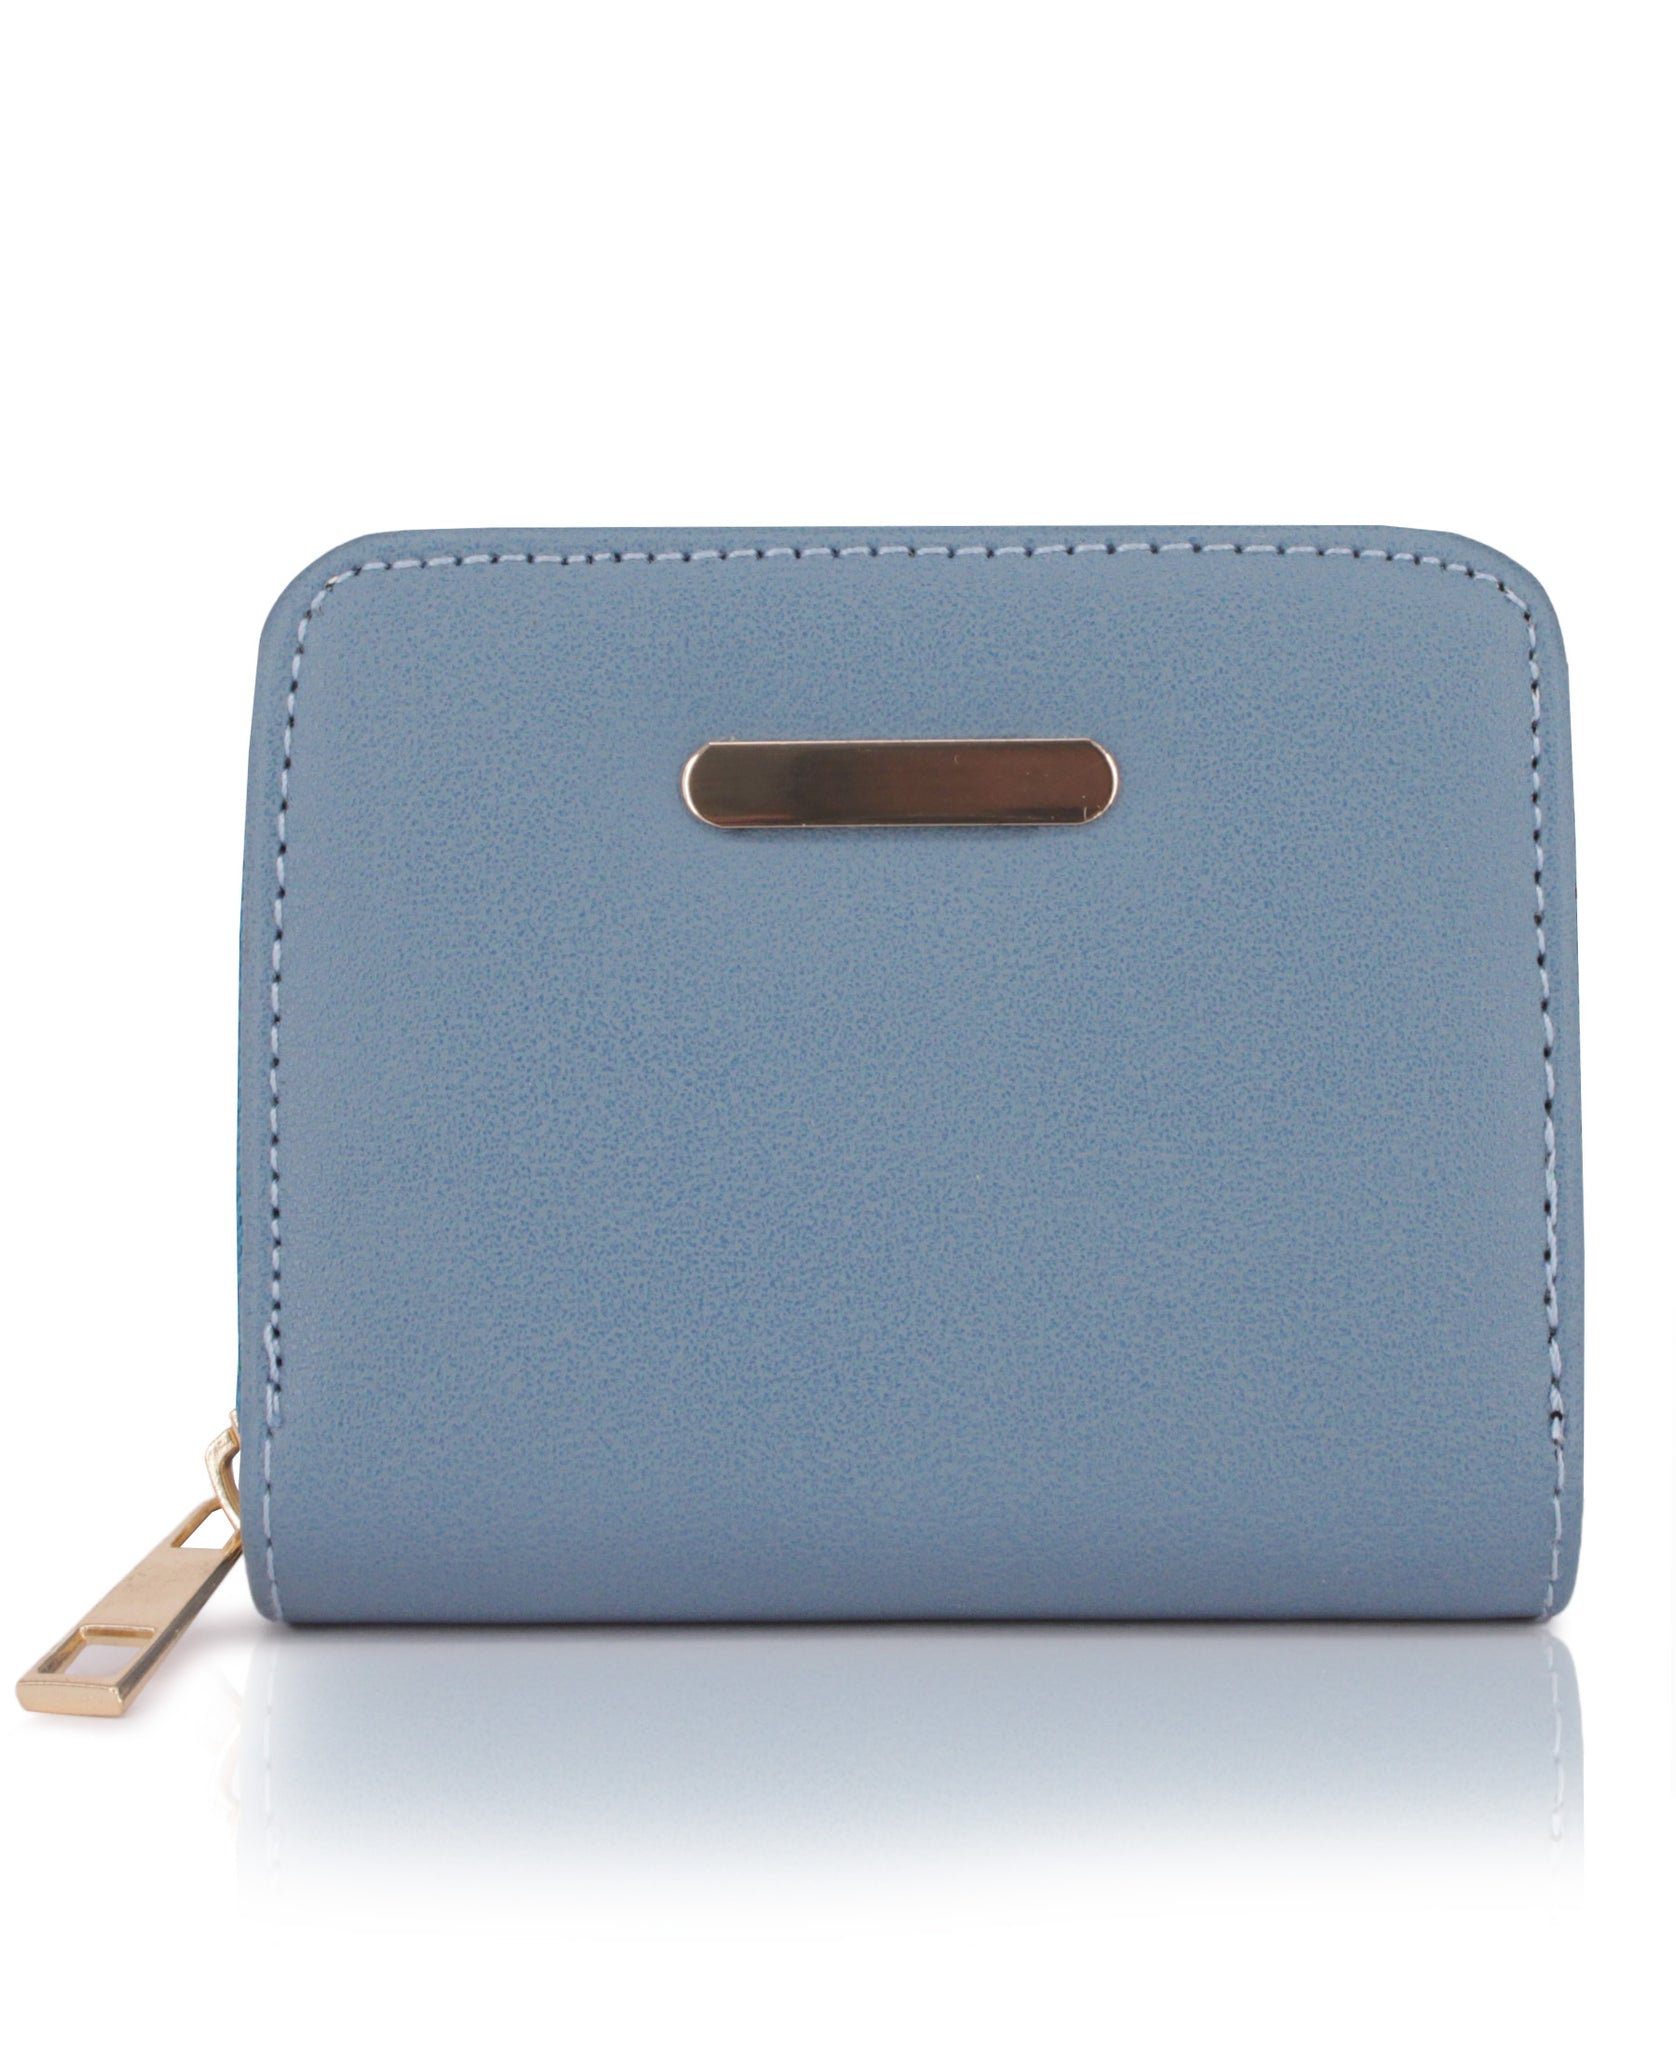 Zipper Wallet - Blue